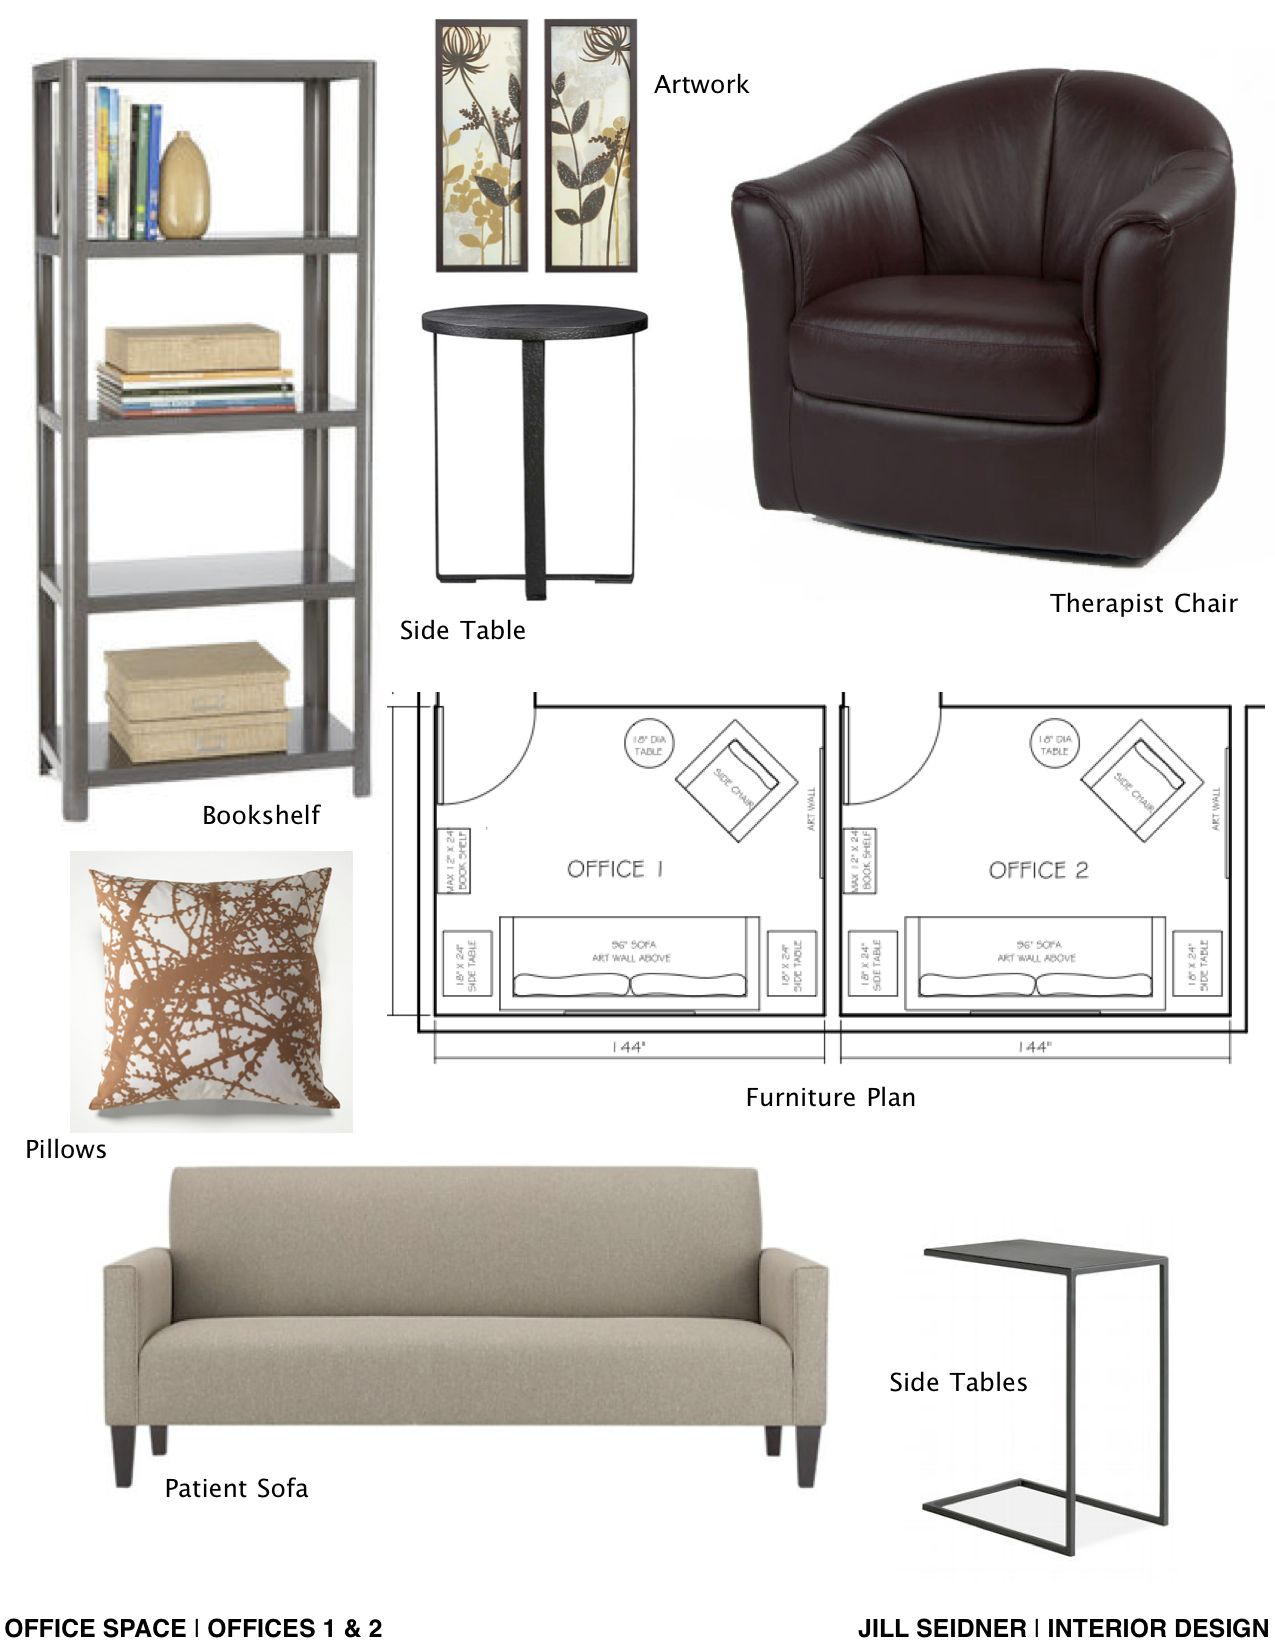 Concept board and furniture layout for therapist office